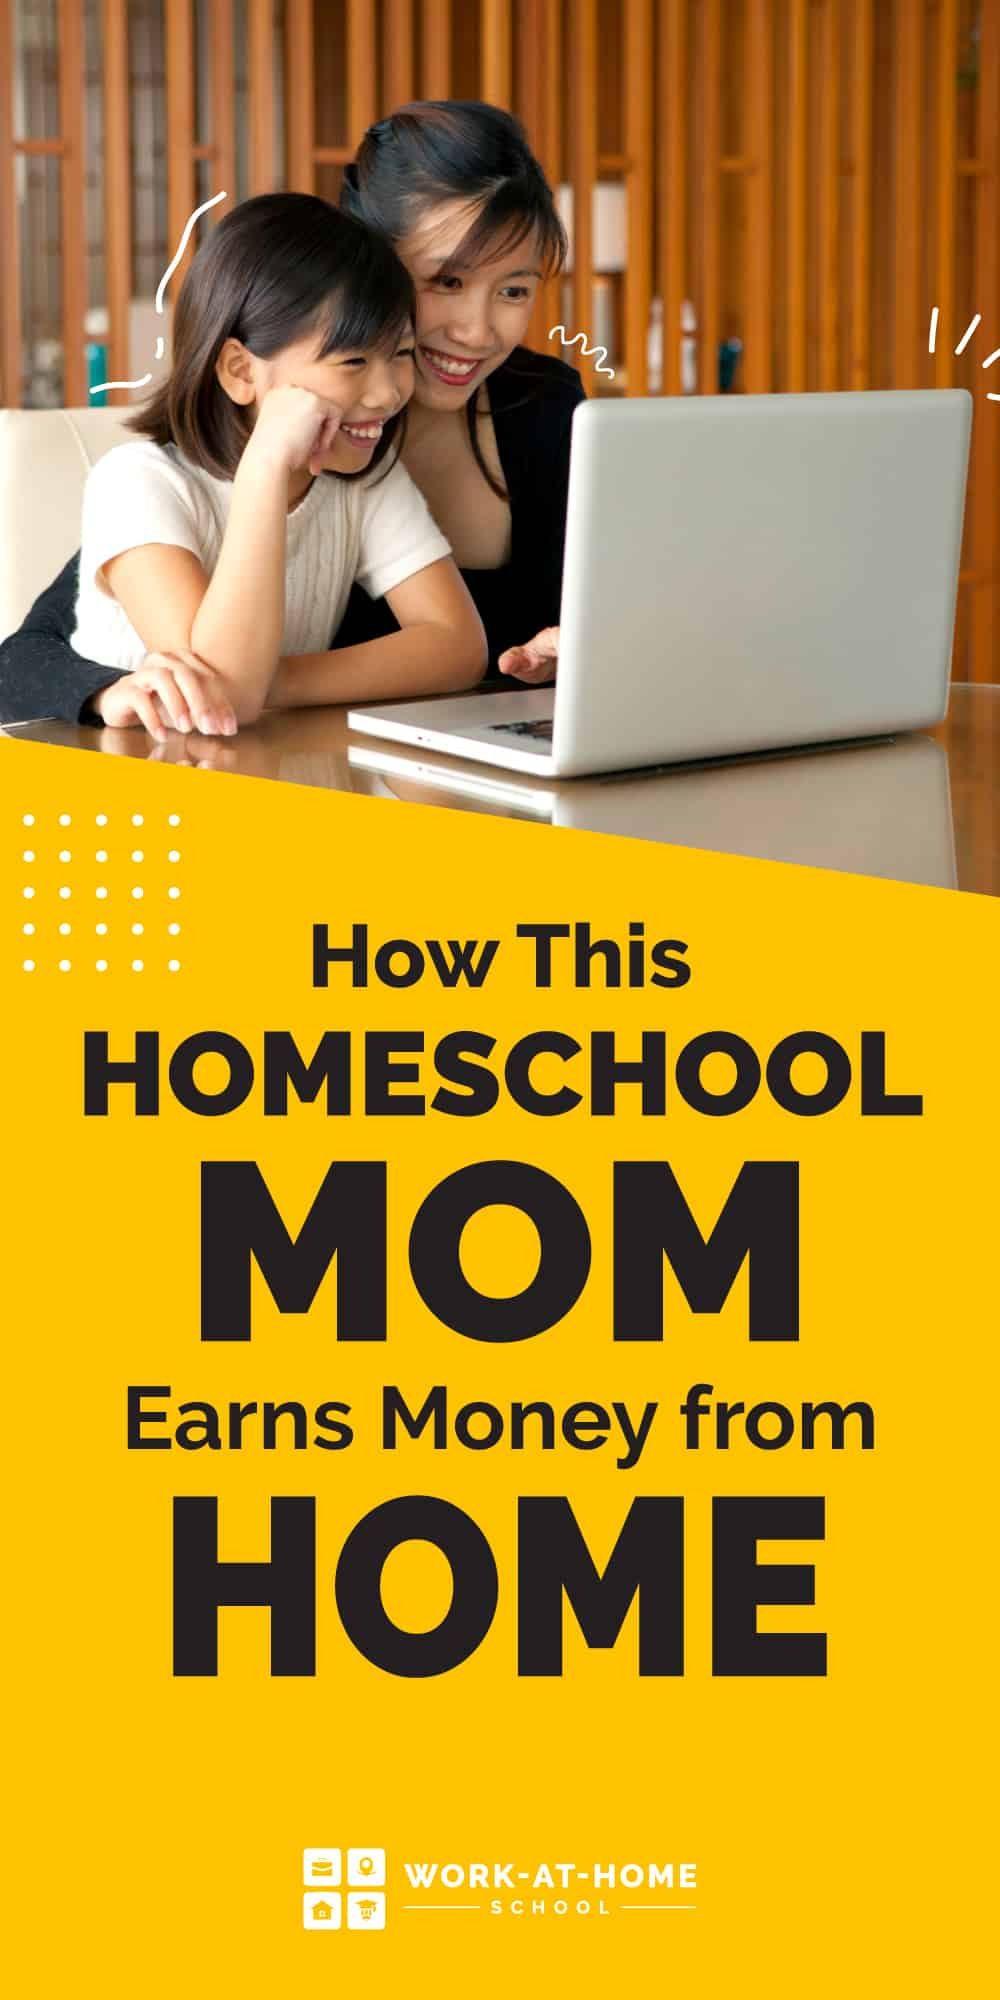 This homeschool mom is killing it as a virtual assistant!